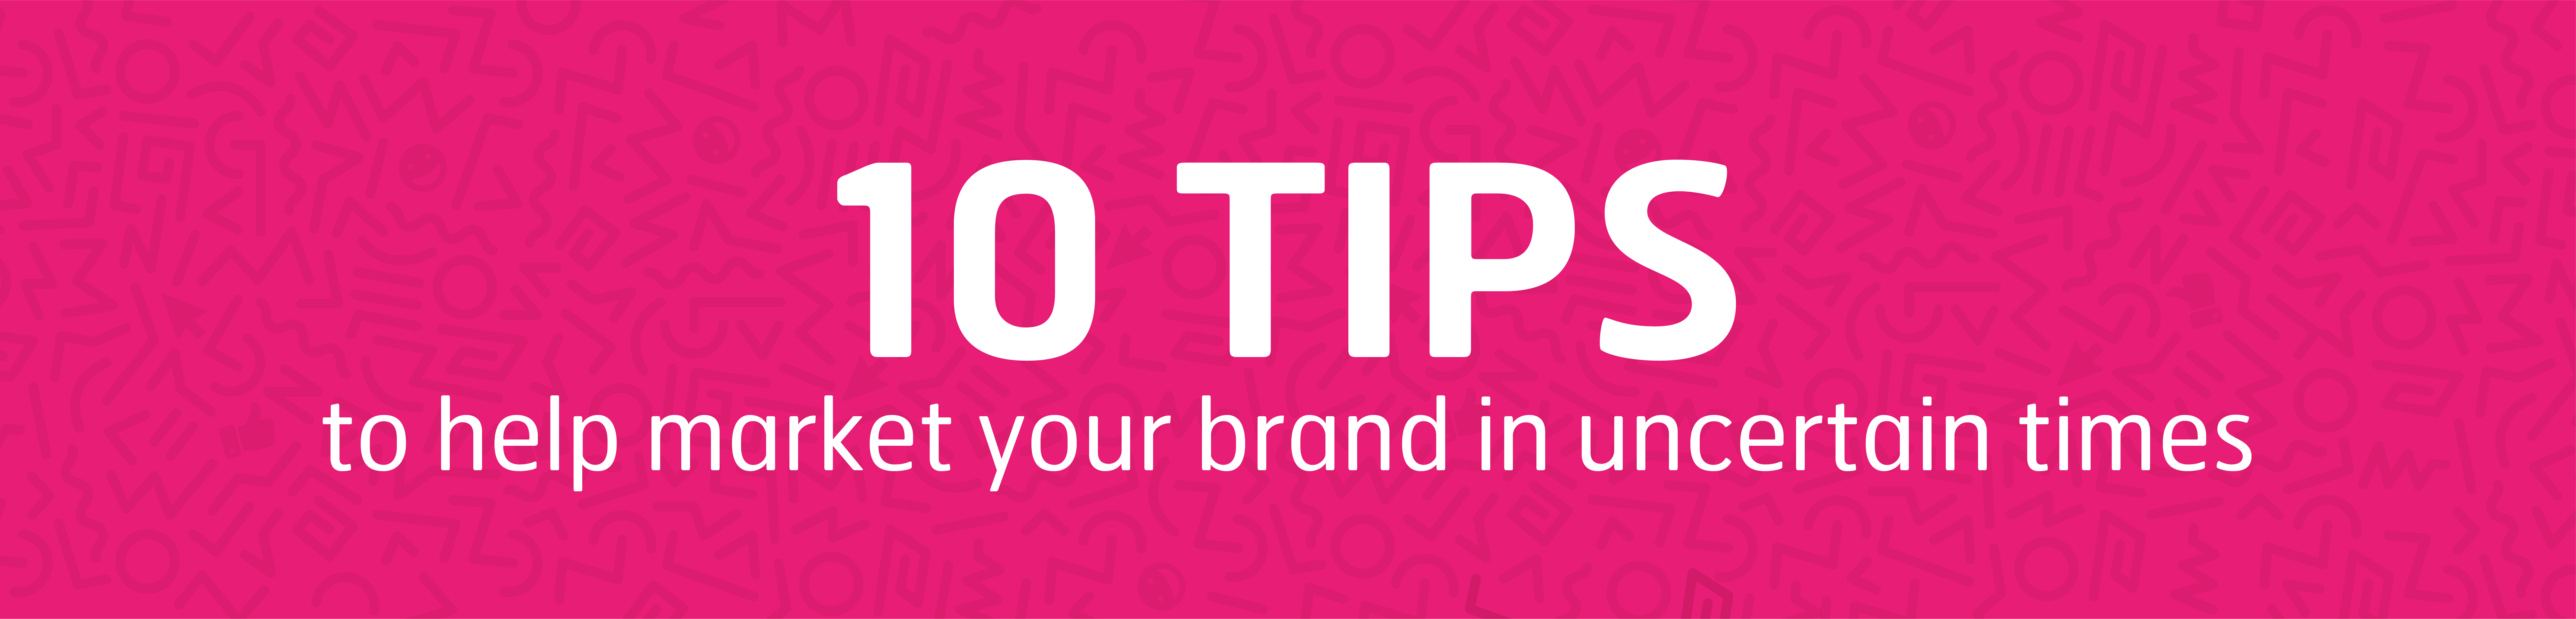 10 tips to help market your brand in uncertain times